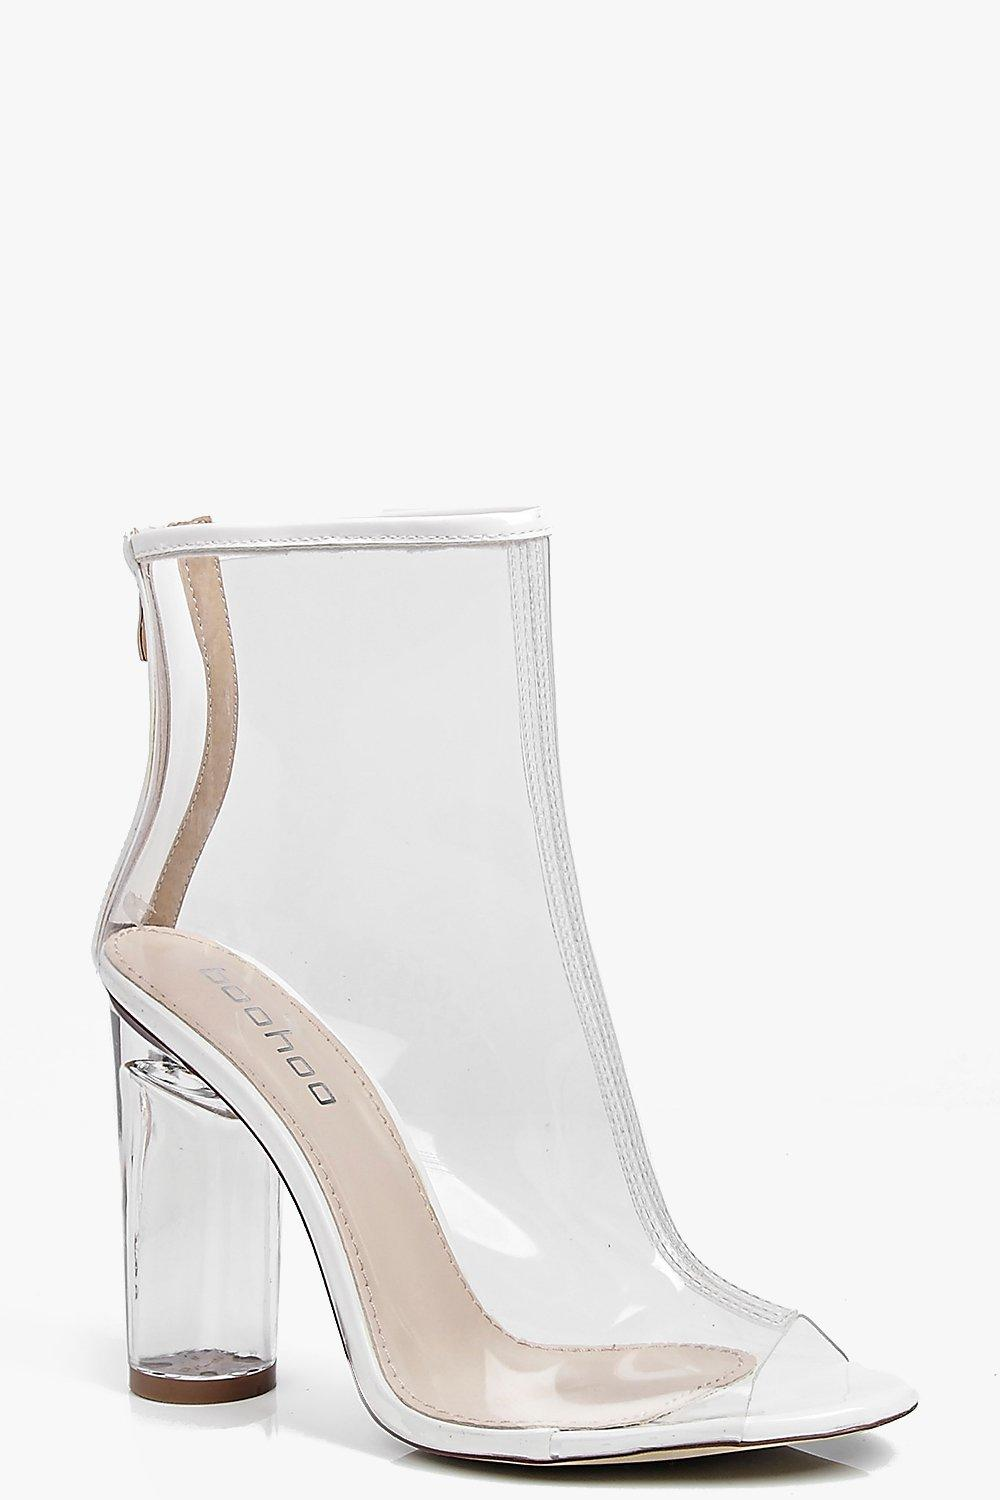 Peeptoe Clear Heel Shoe Boots. Hover to zoom